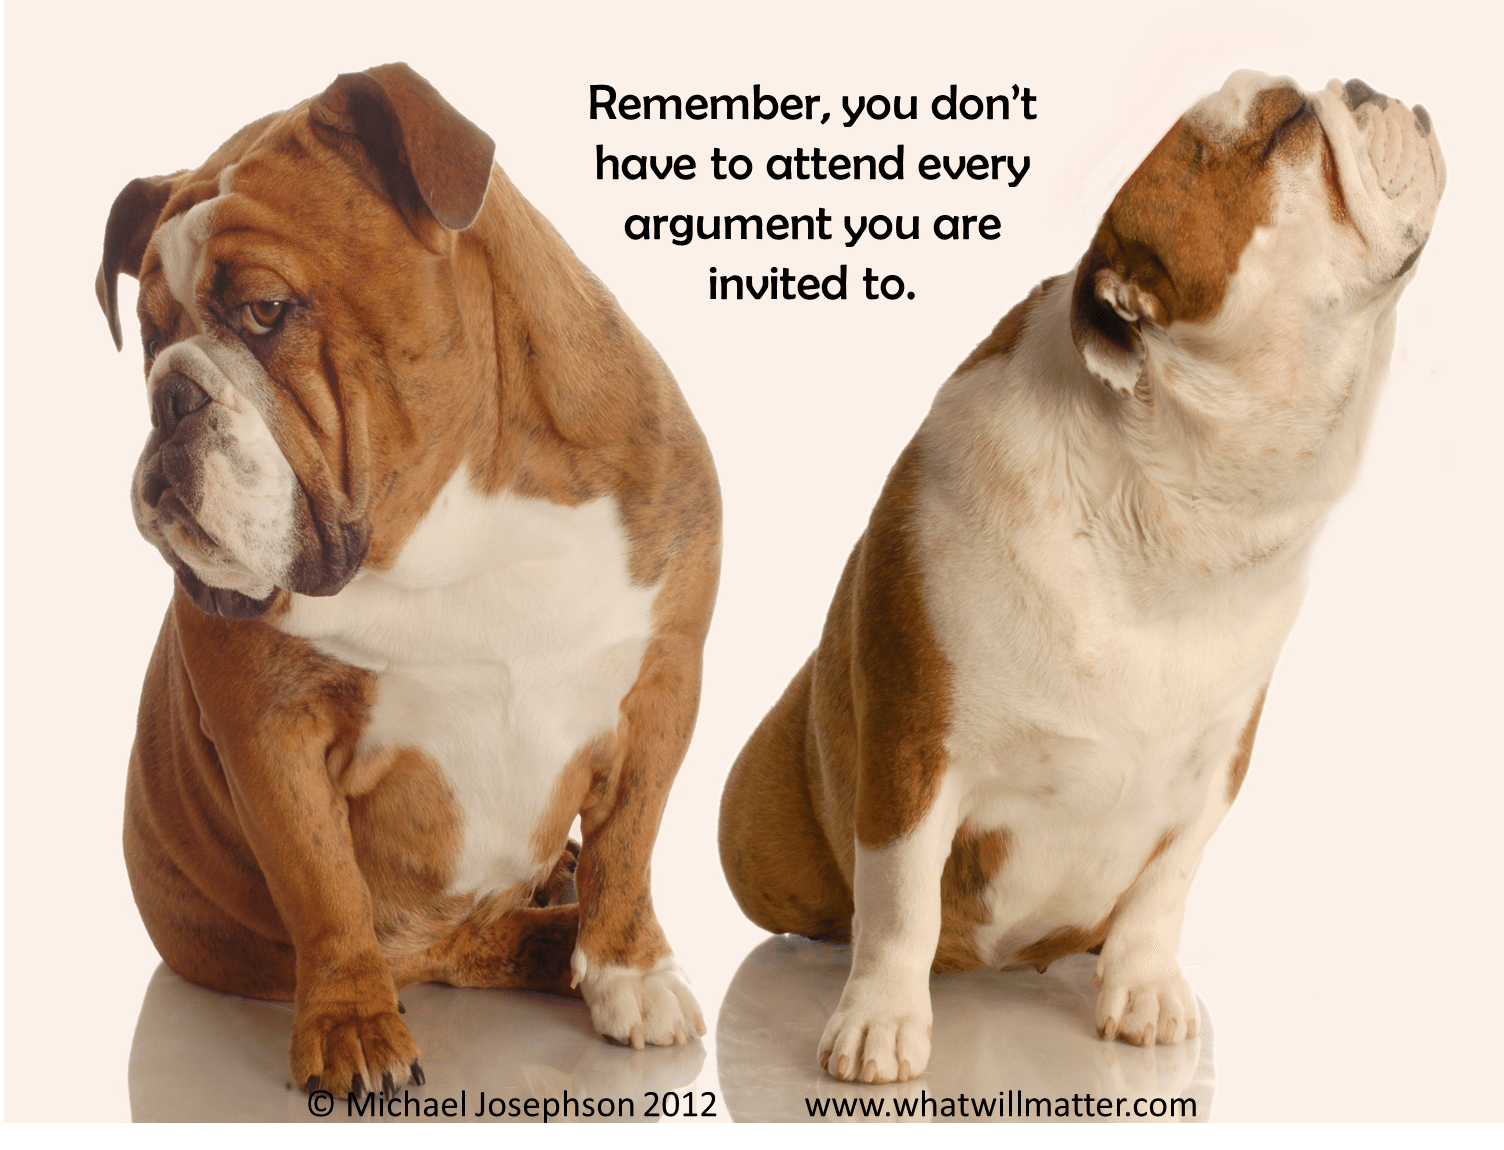 Remember you don't have to attend every argument you are invited to.